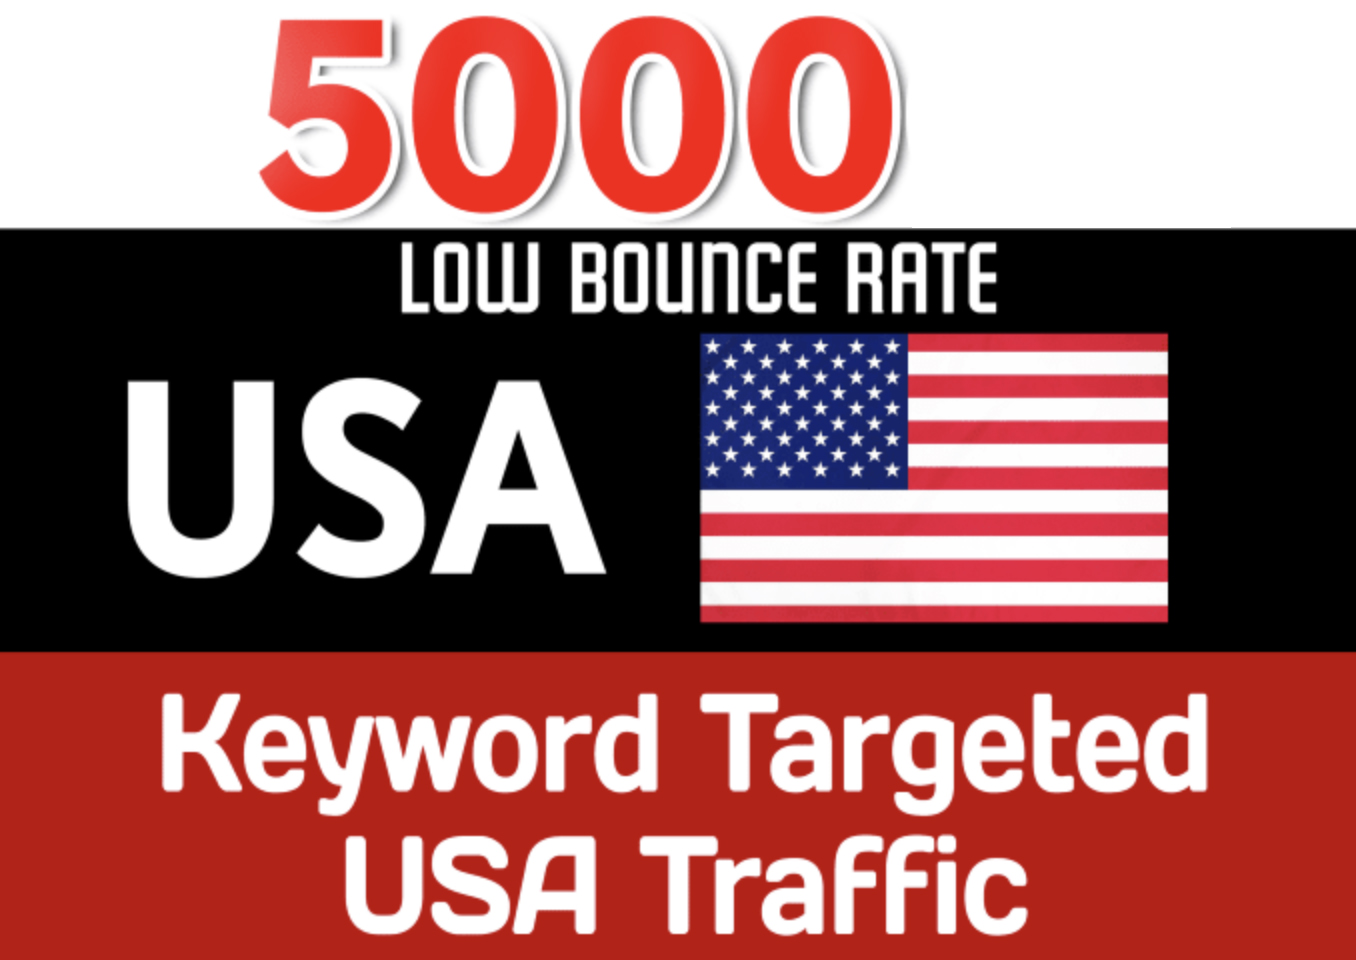 DRIVE 5.000 USA Keyword Targeted Low Bounce Rate Traffic